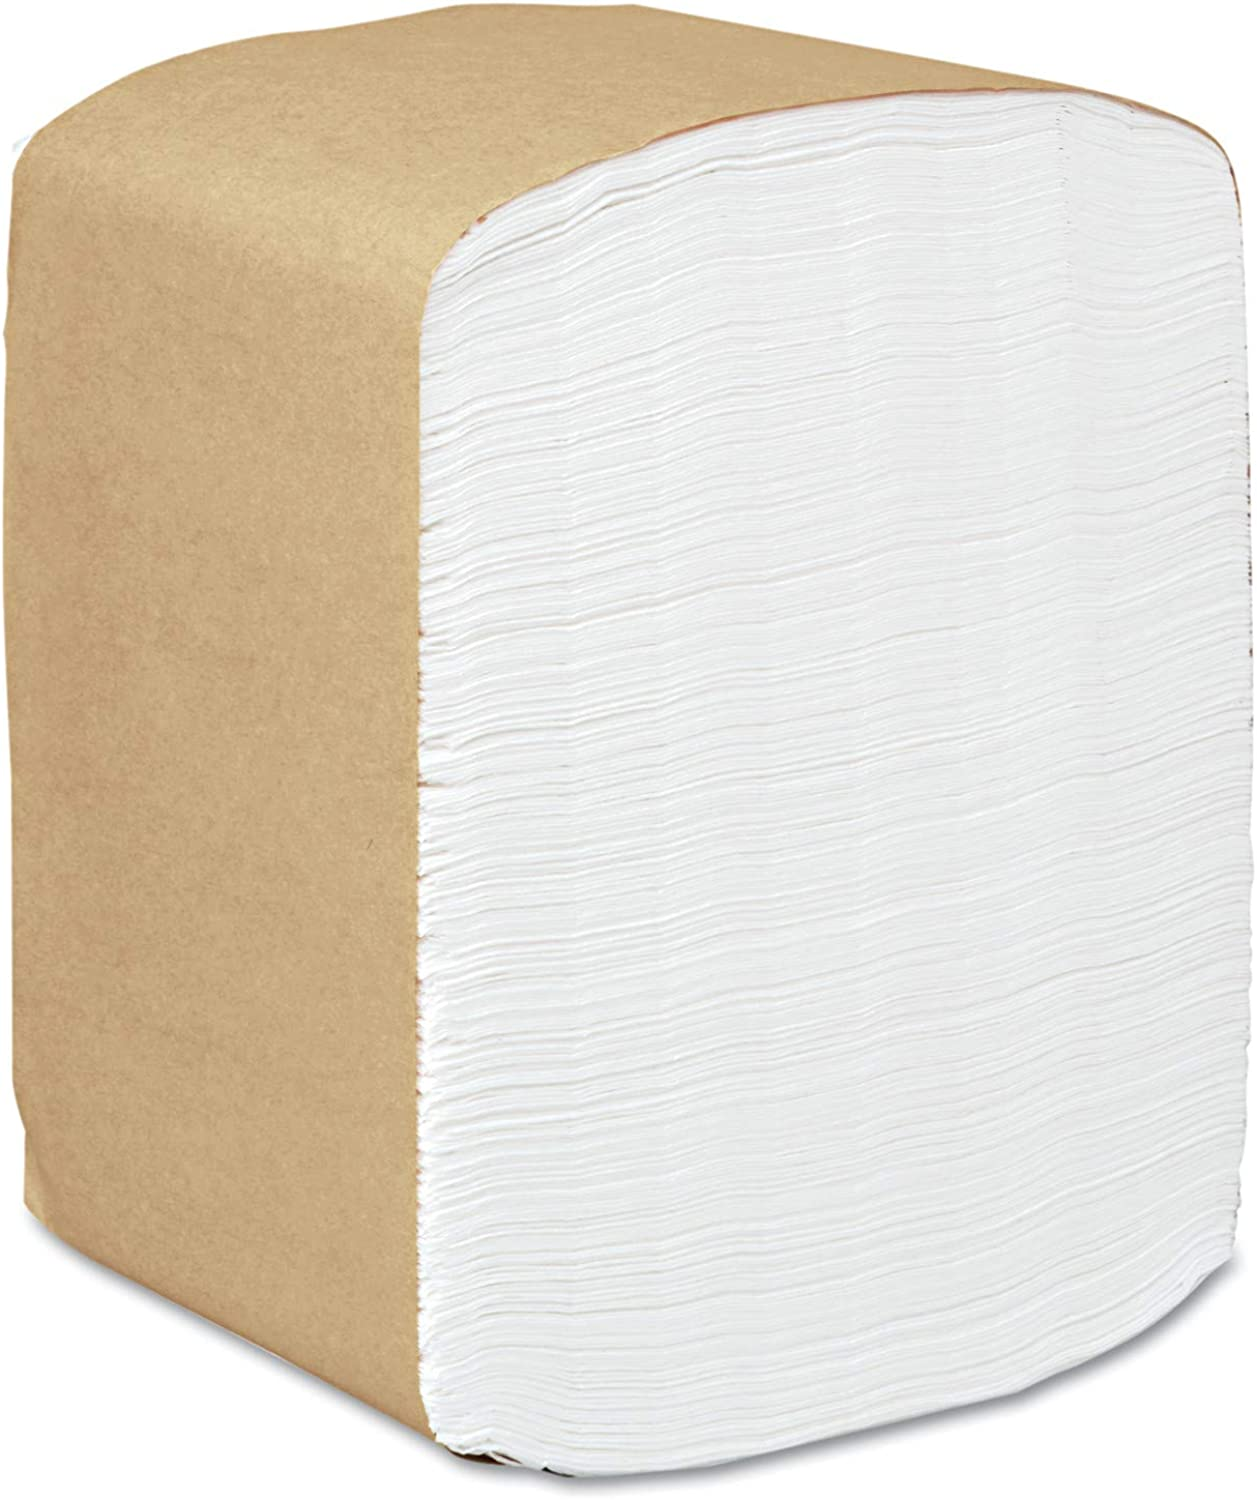 Scott 98740 Full Fold Dispenser Napkins, 1-Ply, 13 x 12, White, 375 per Pack (Case of 16 Packs)